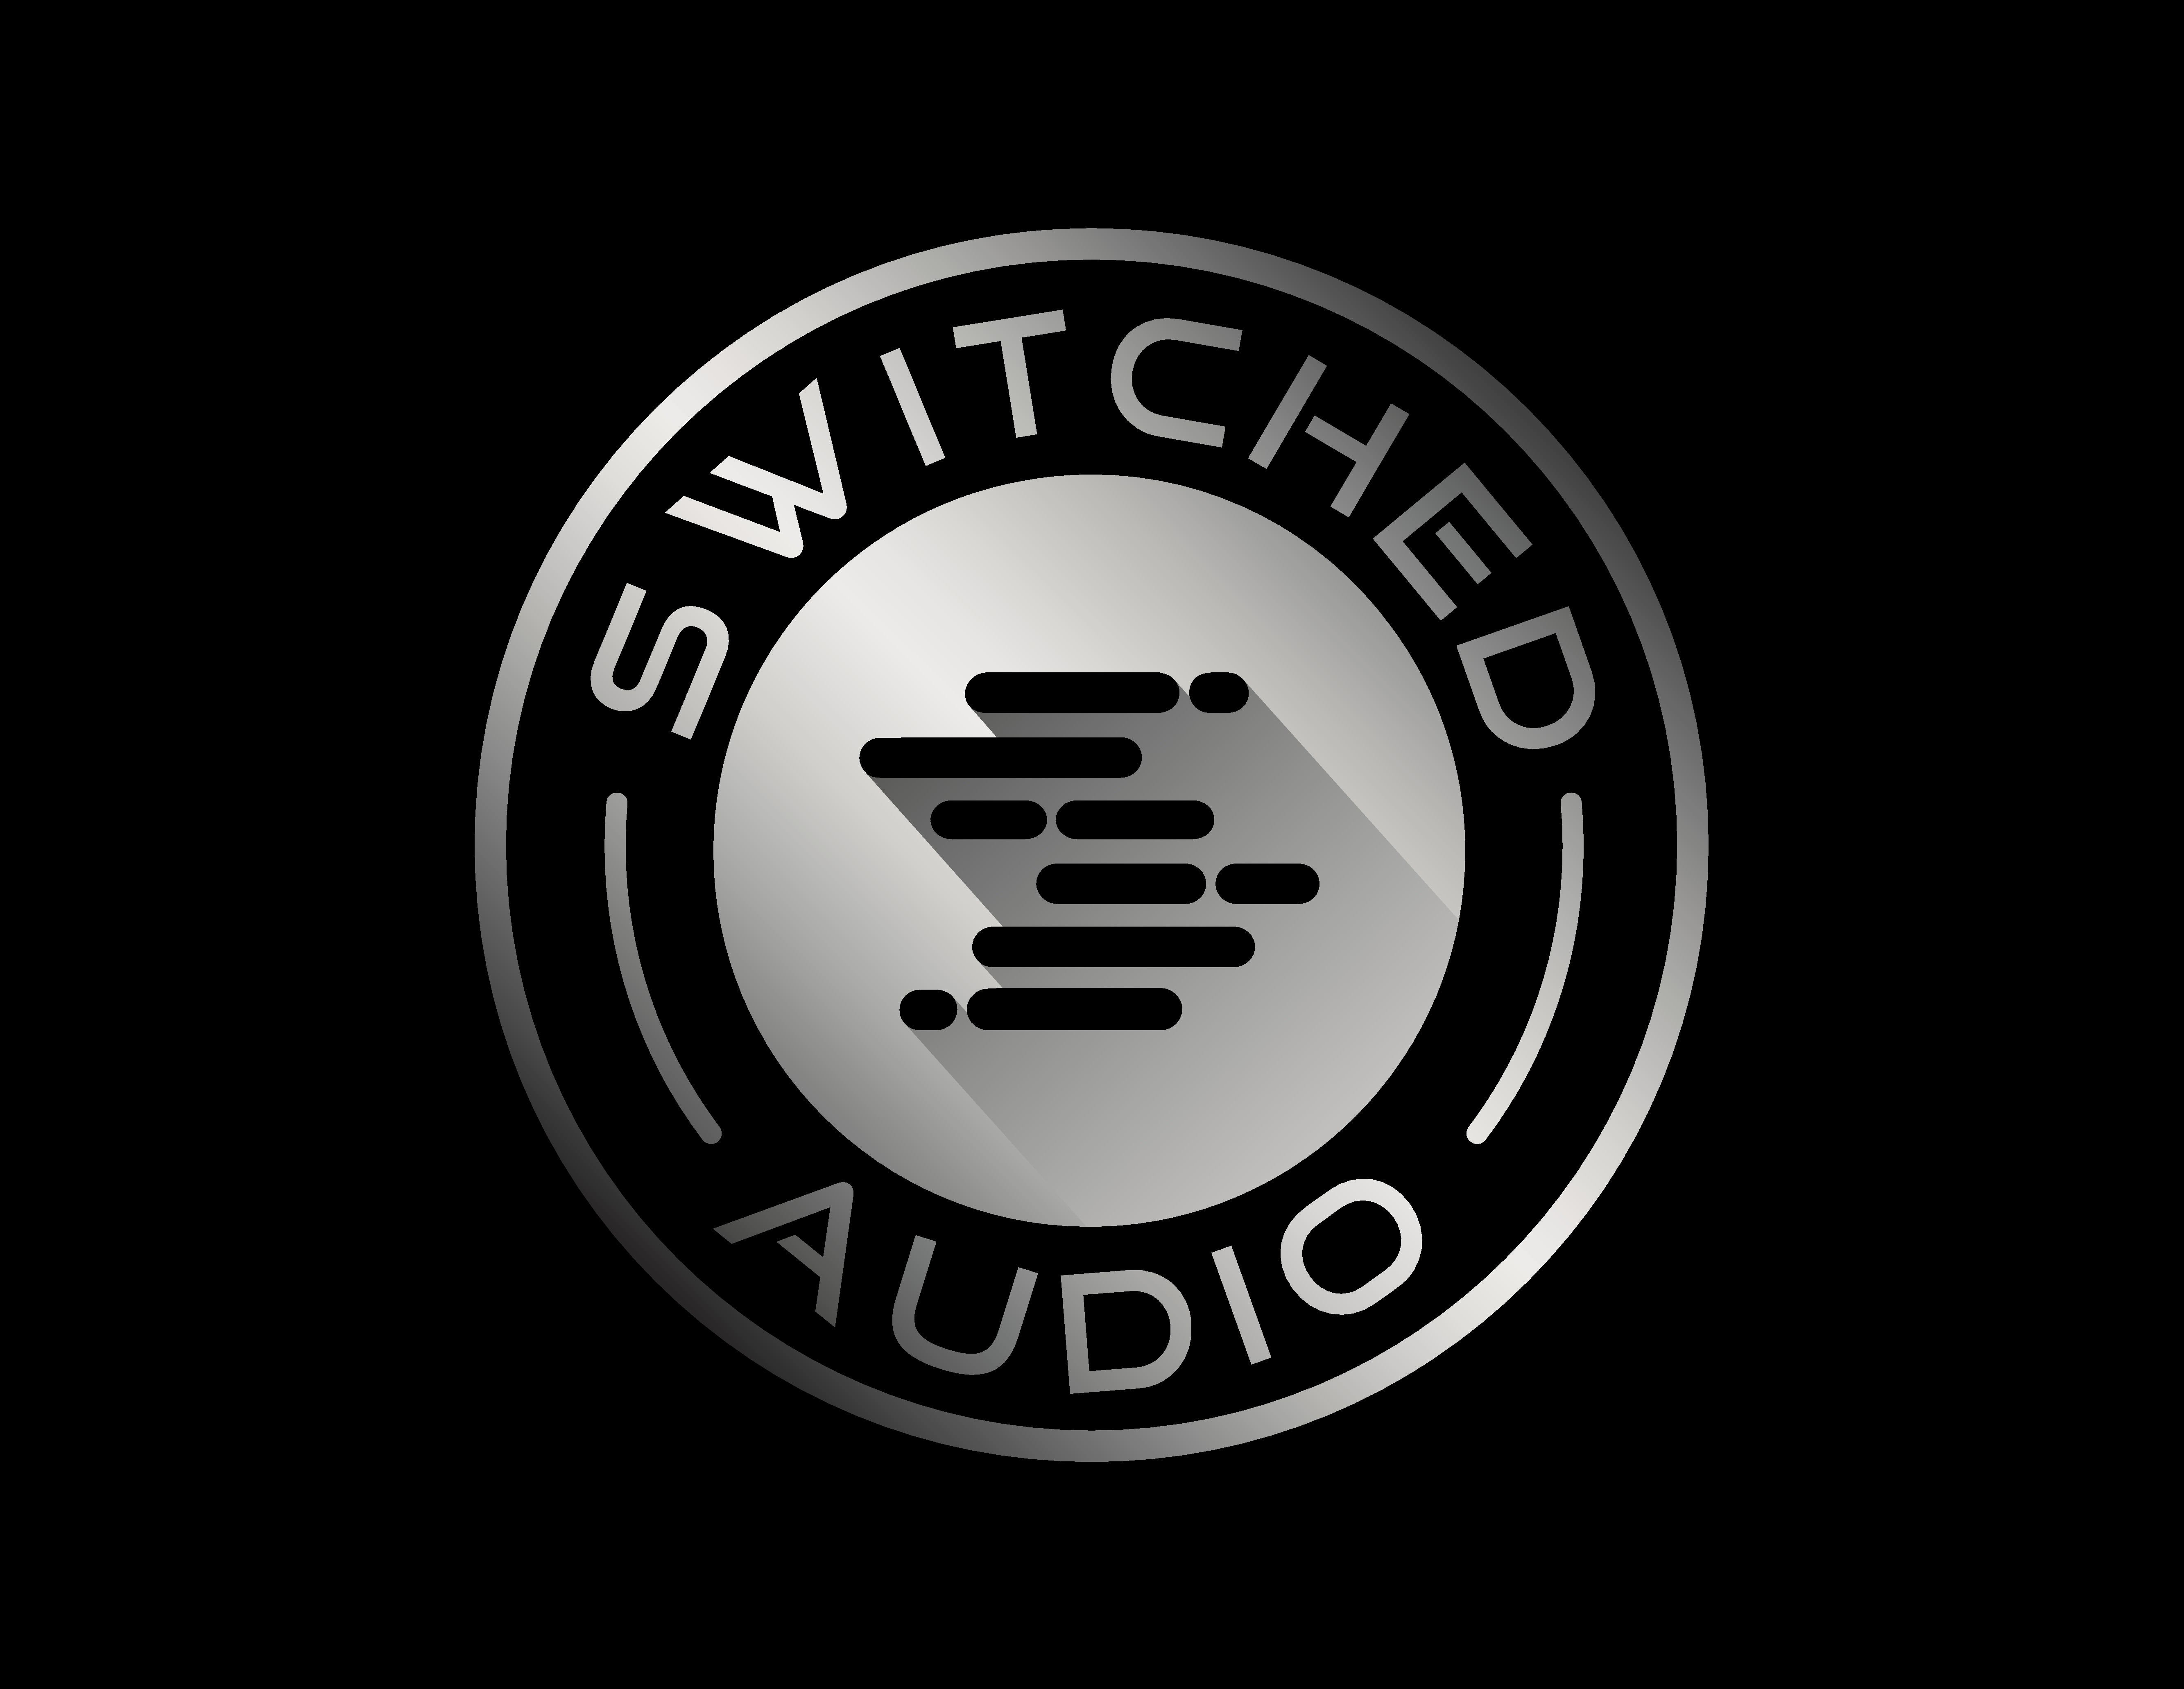 Switched Audio Logo Design